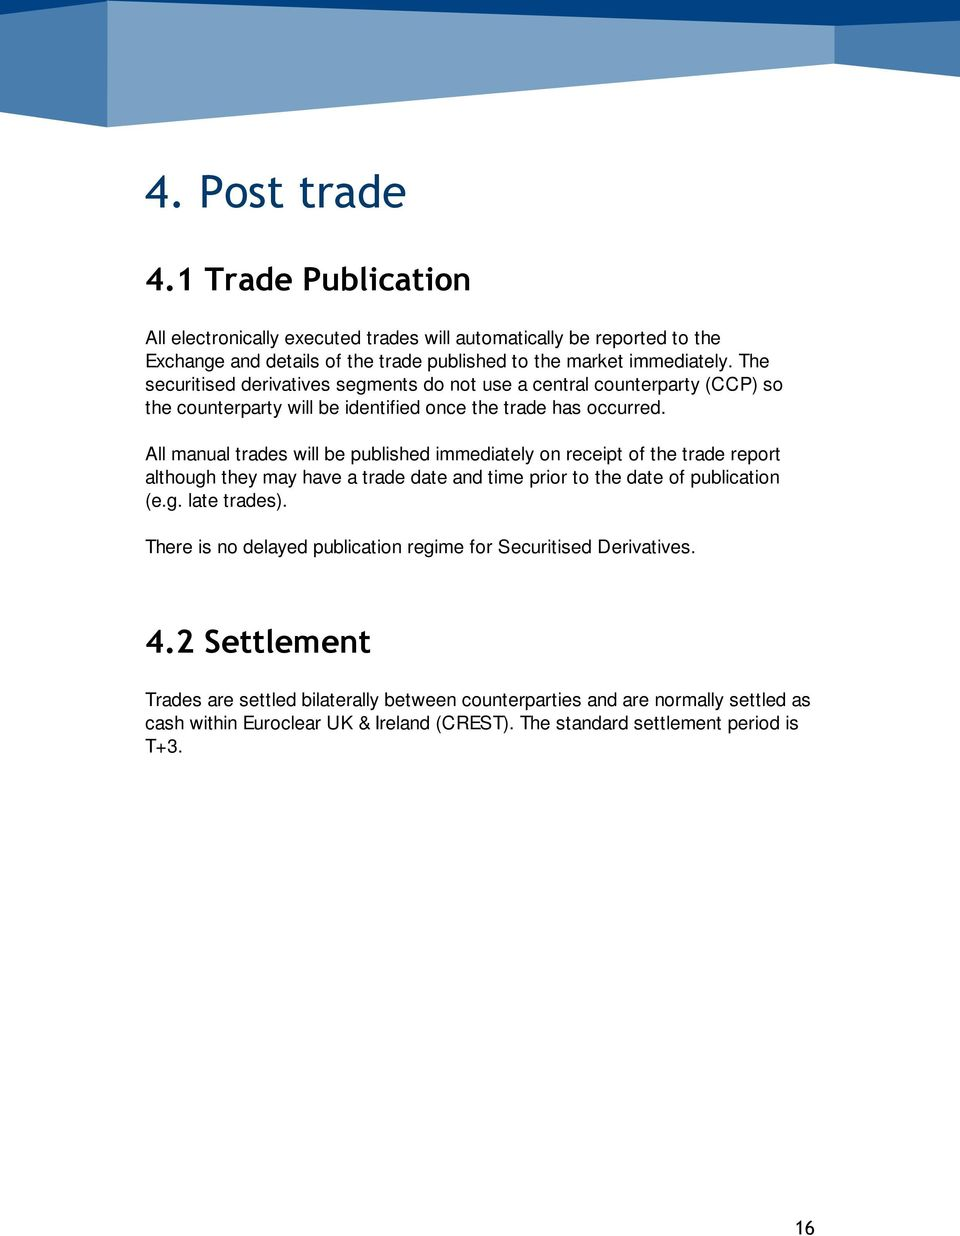 All manual trades will be published immediately on receipt of the trade report although they may have a trade date and time prior to the date of publication (e.g. late trades).